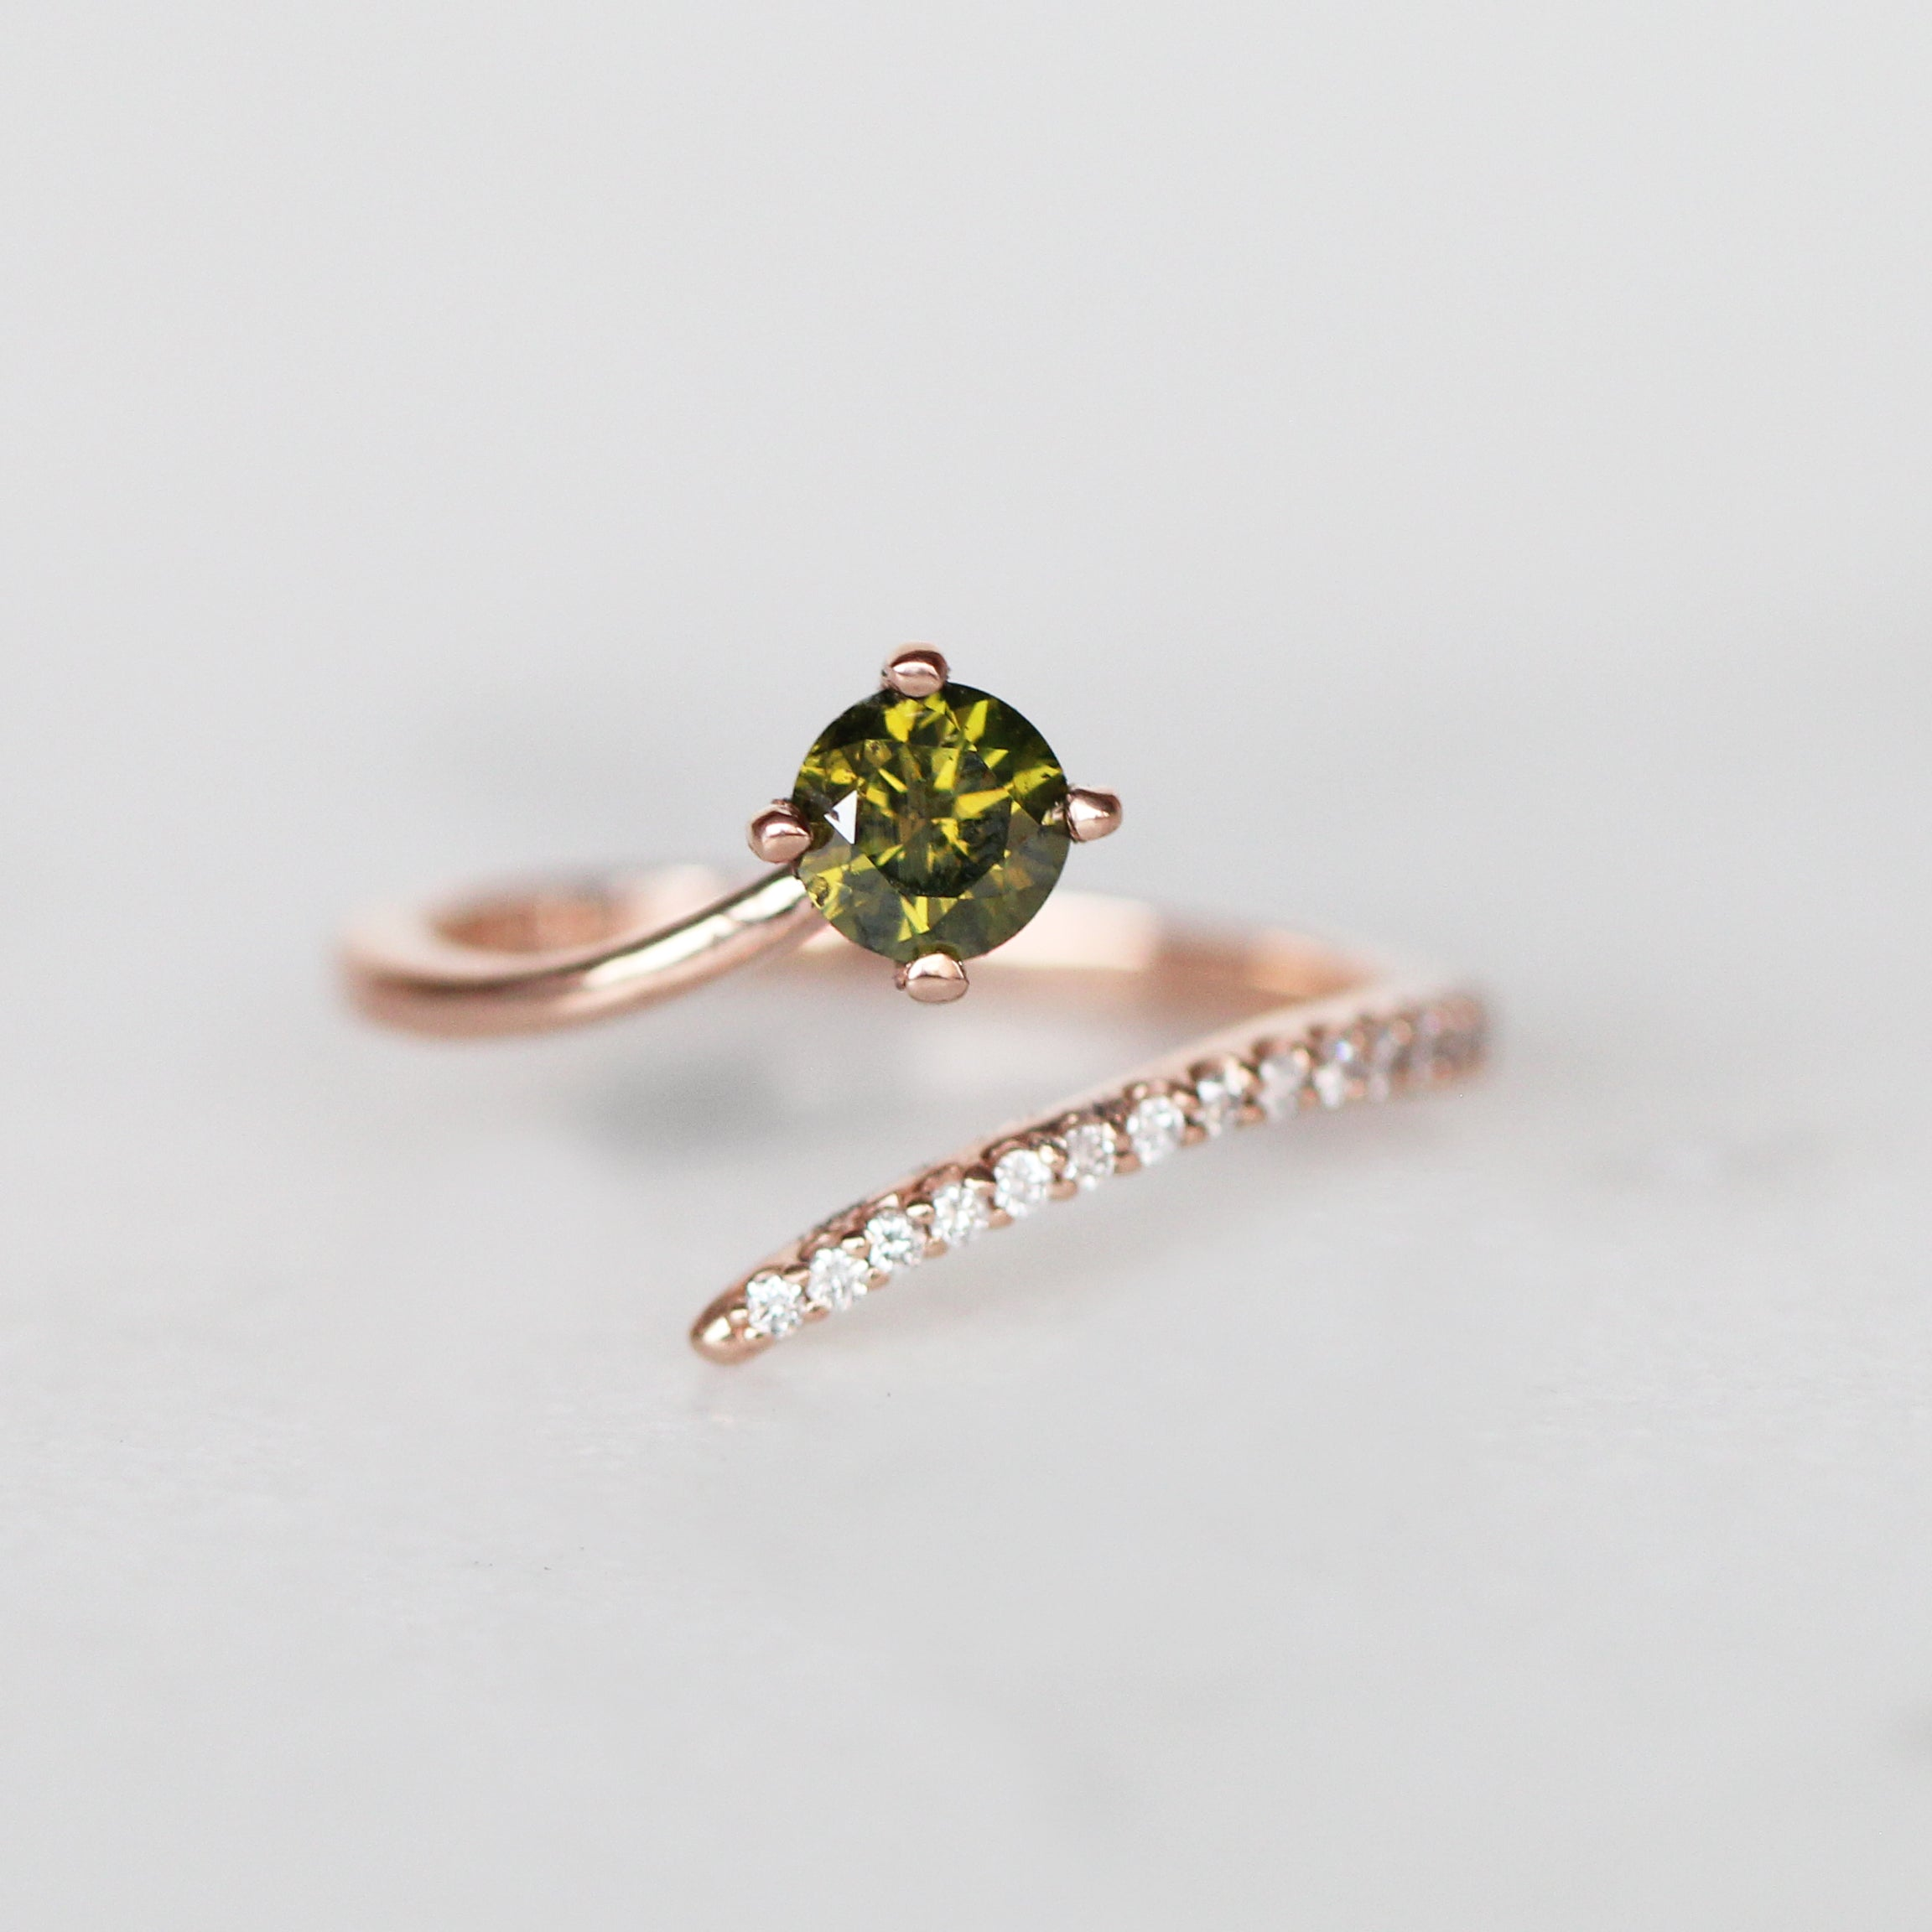 Nebula Ring with .55ct Olive Green Diamond in 10k Rose Gold- Ready to Size and Ship - Salt & Pepper Celestial Diamond Engagement Rings and Wedding Bands  by Midwinter Co.